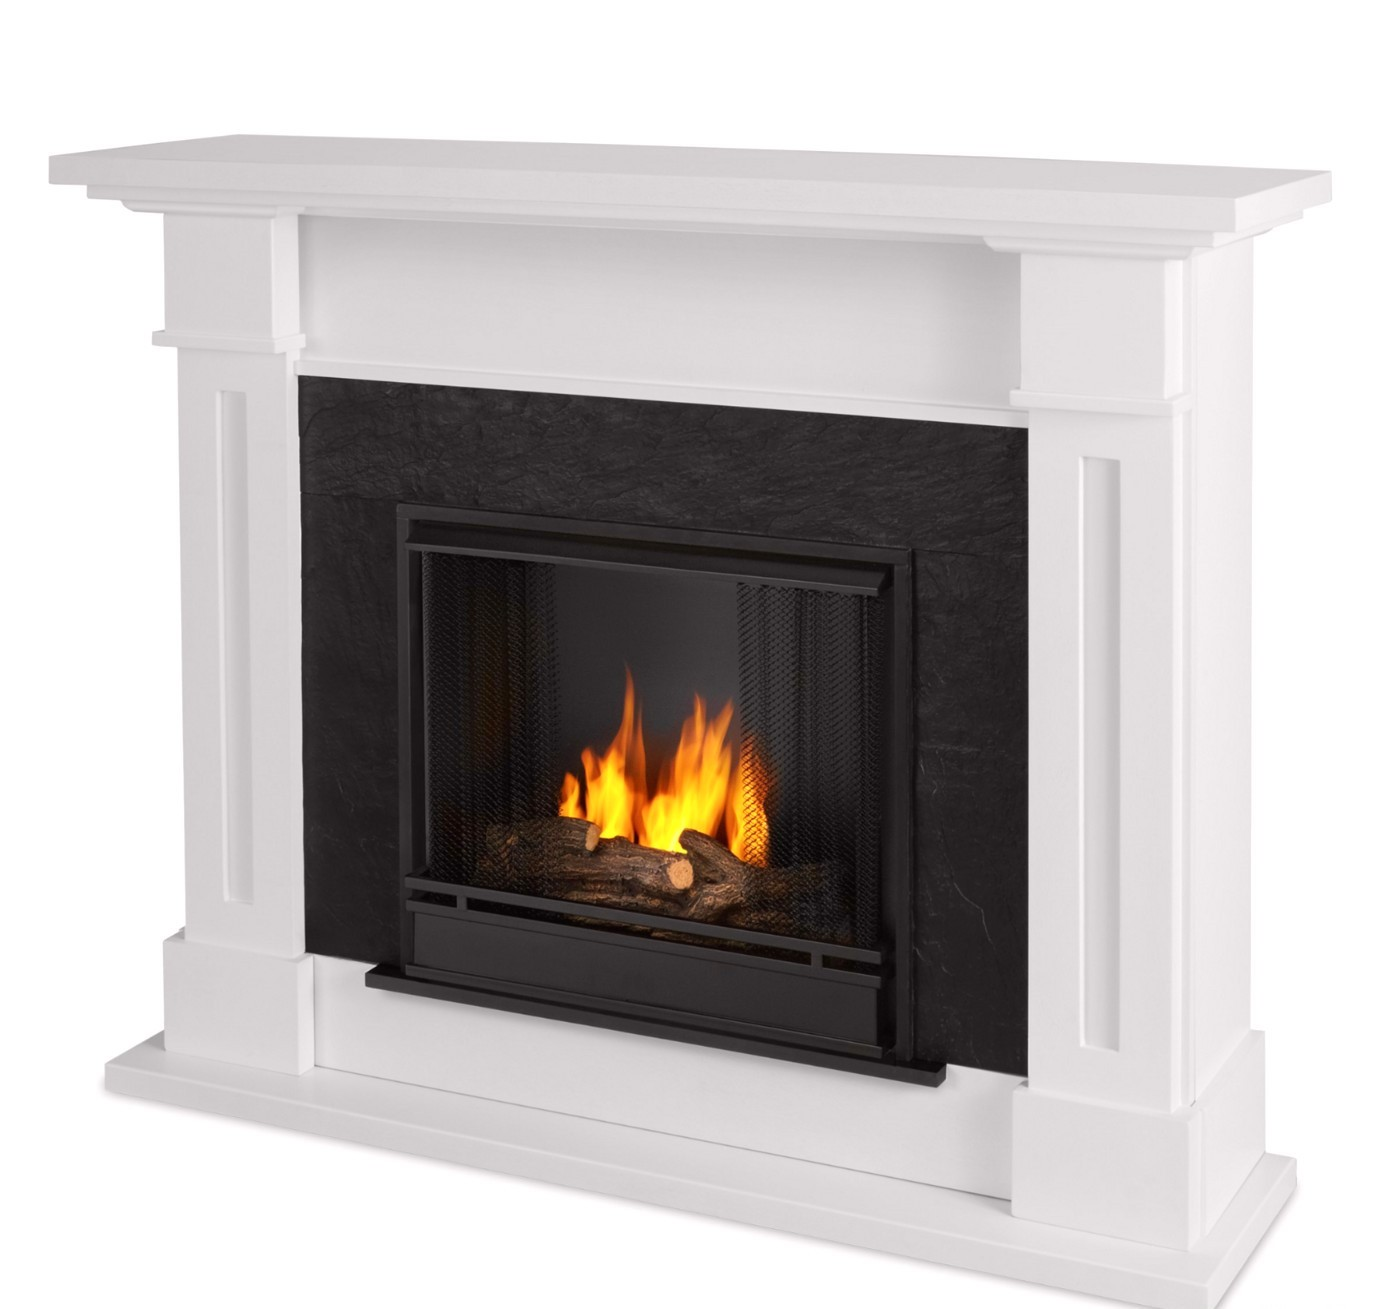 Kipling Ventless Gel Fuel Fireplace In White With Cast Logs 54x42